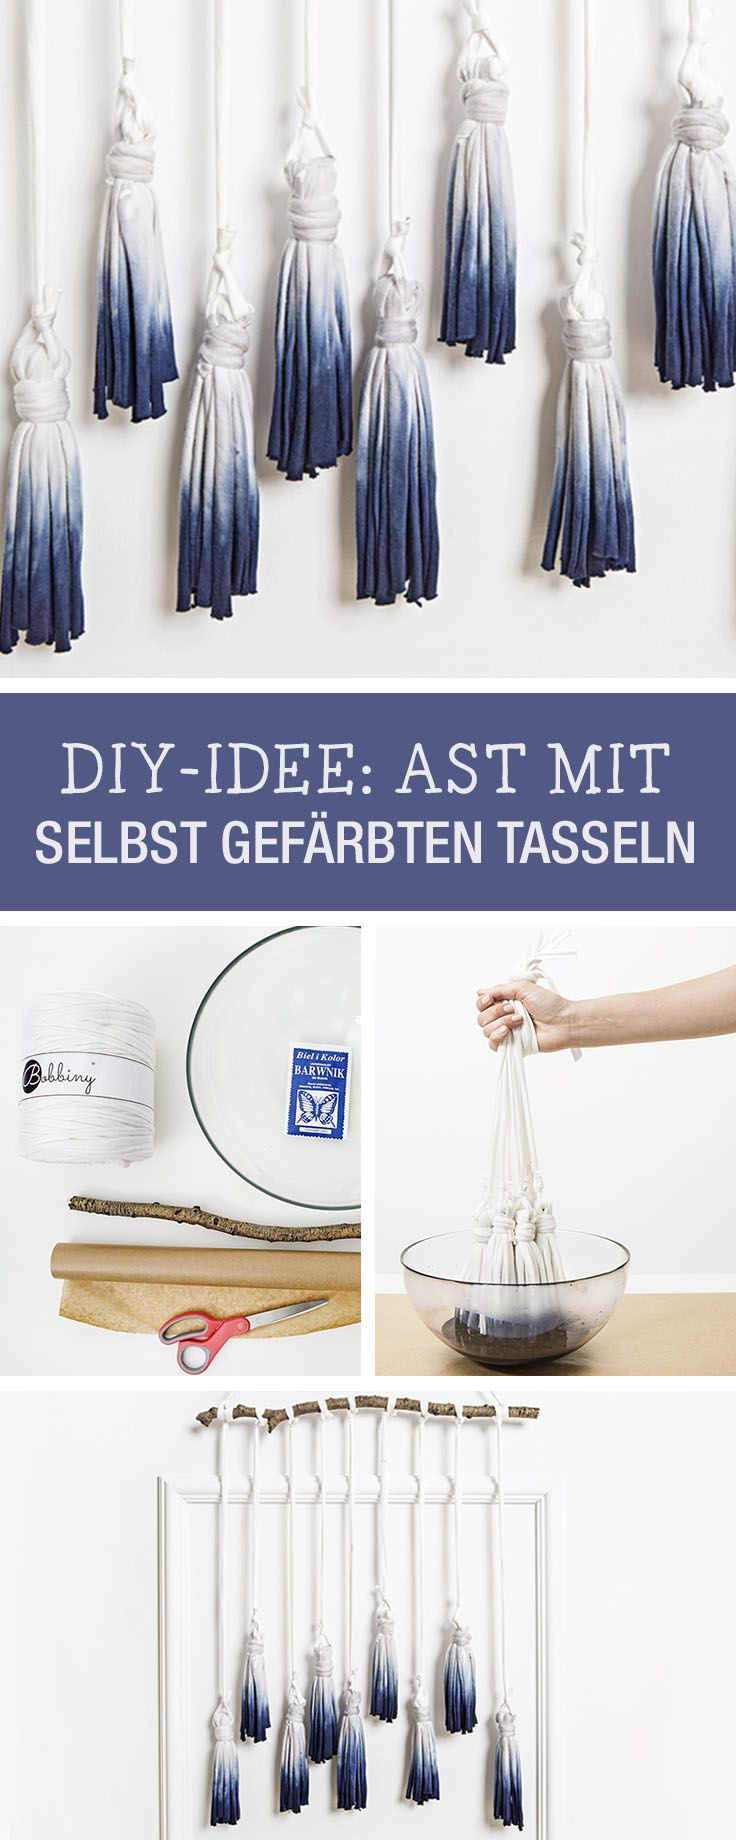 DIY-Anleitung: Ast mit selbst gefärbten Tasseln verschönern, Deine kreative Wohndeko / DIY tutorial: embellish branch with dyed tassel via DaWanda.com